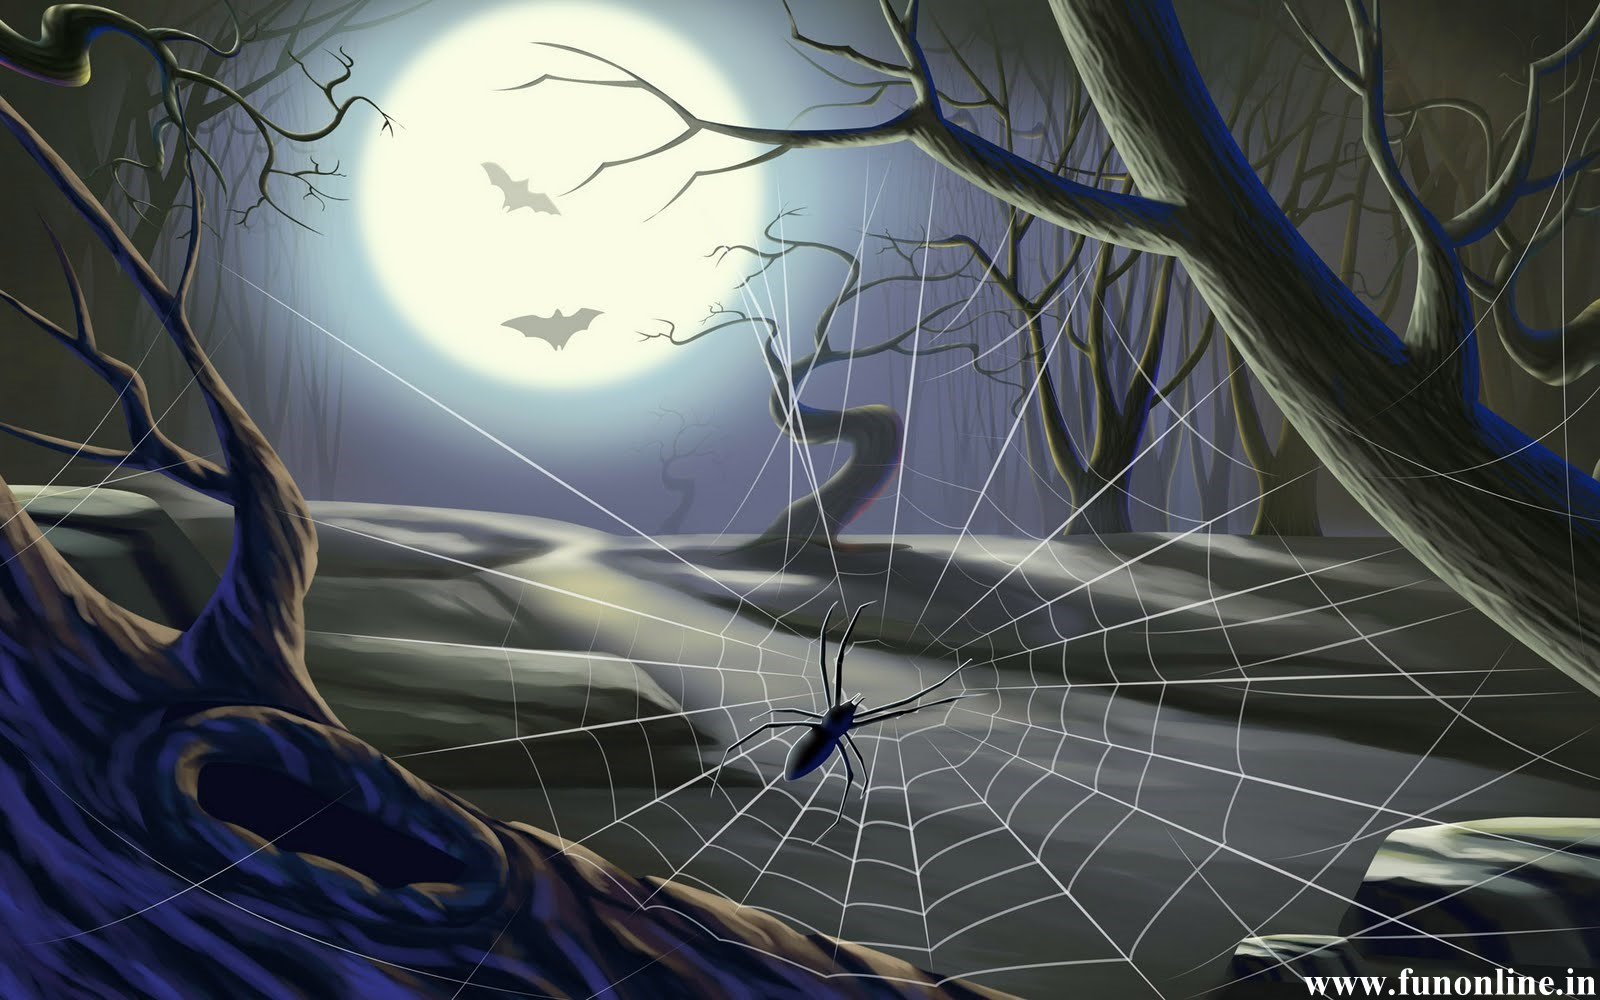 Animated spider wallpaper wallpapersafari - Spider hd images download ...